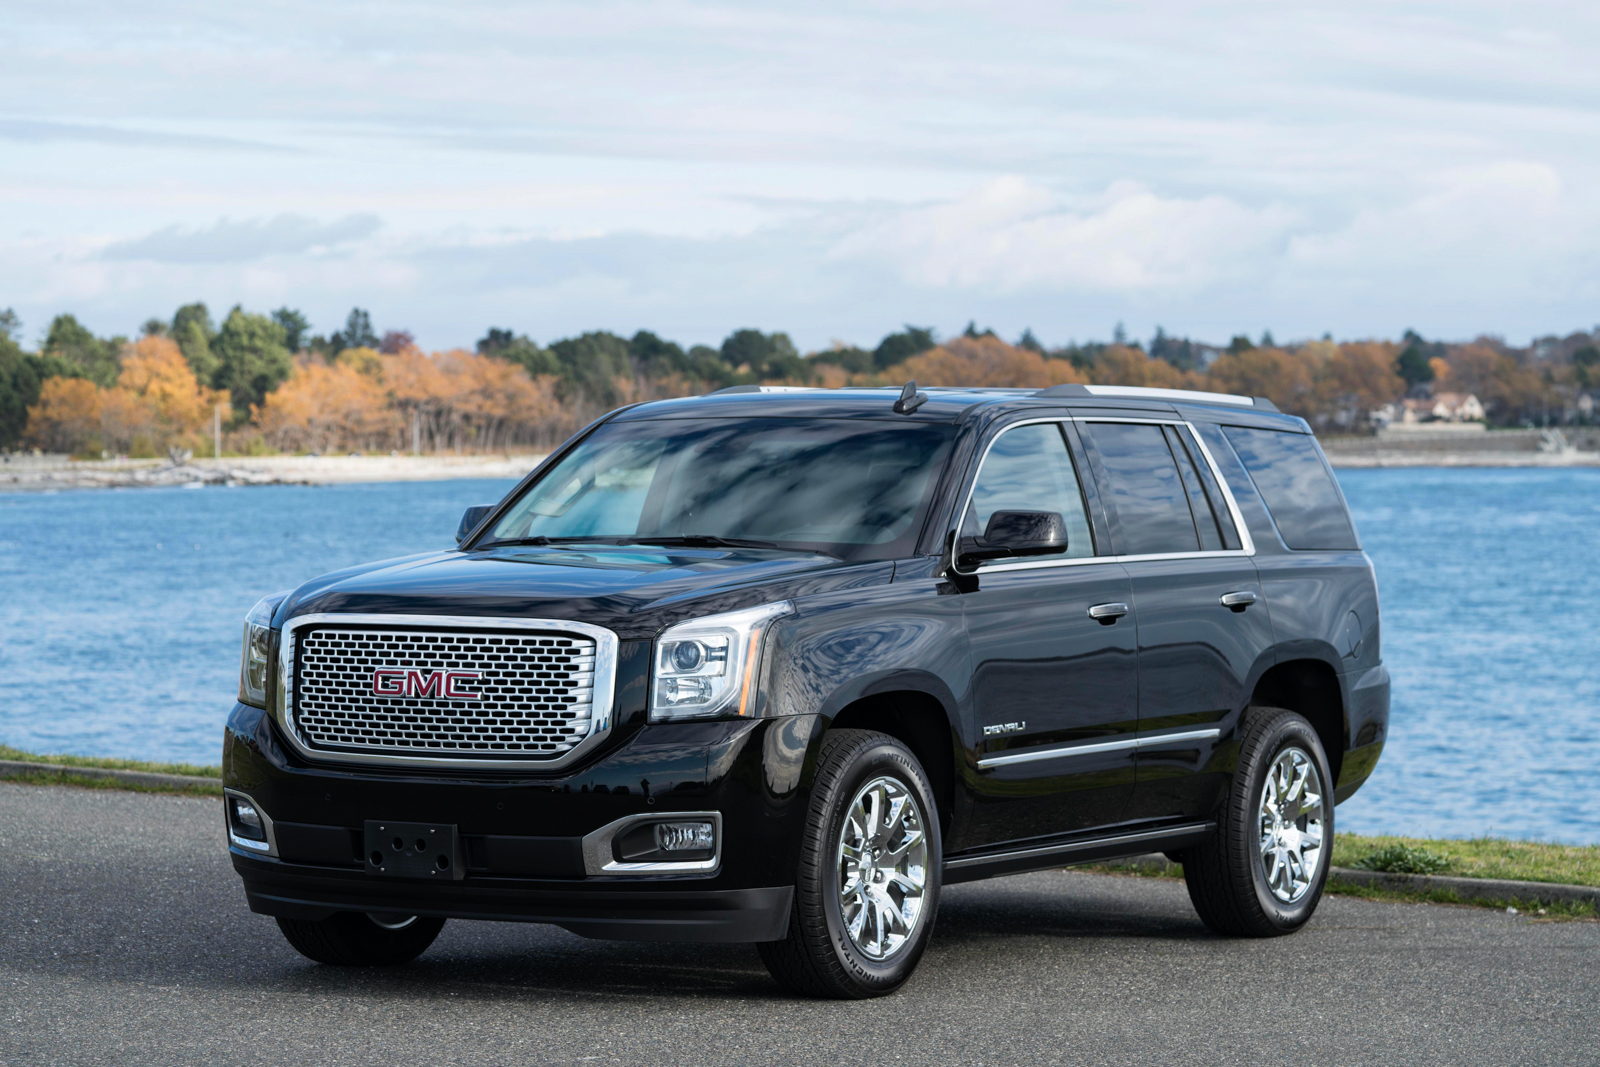 2017 Gmc Yukon Denali 4x4 For